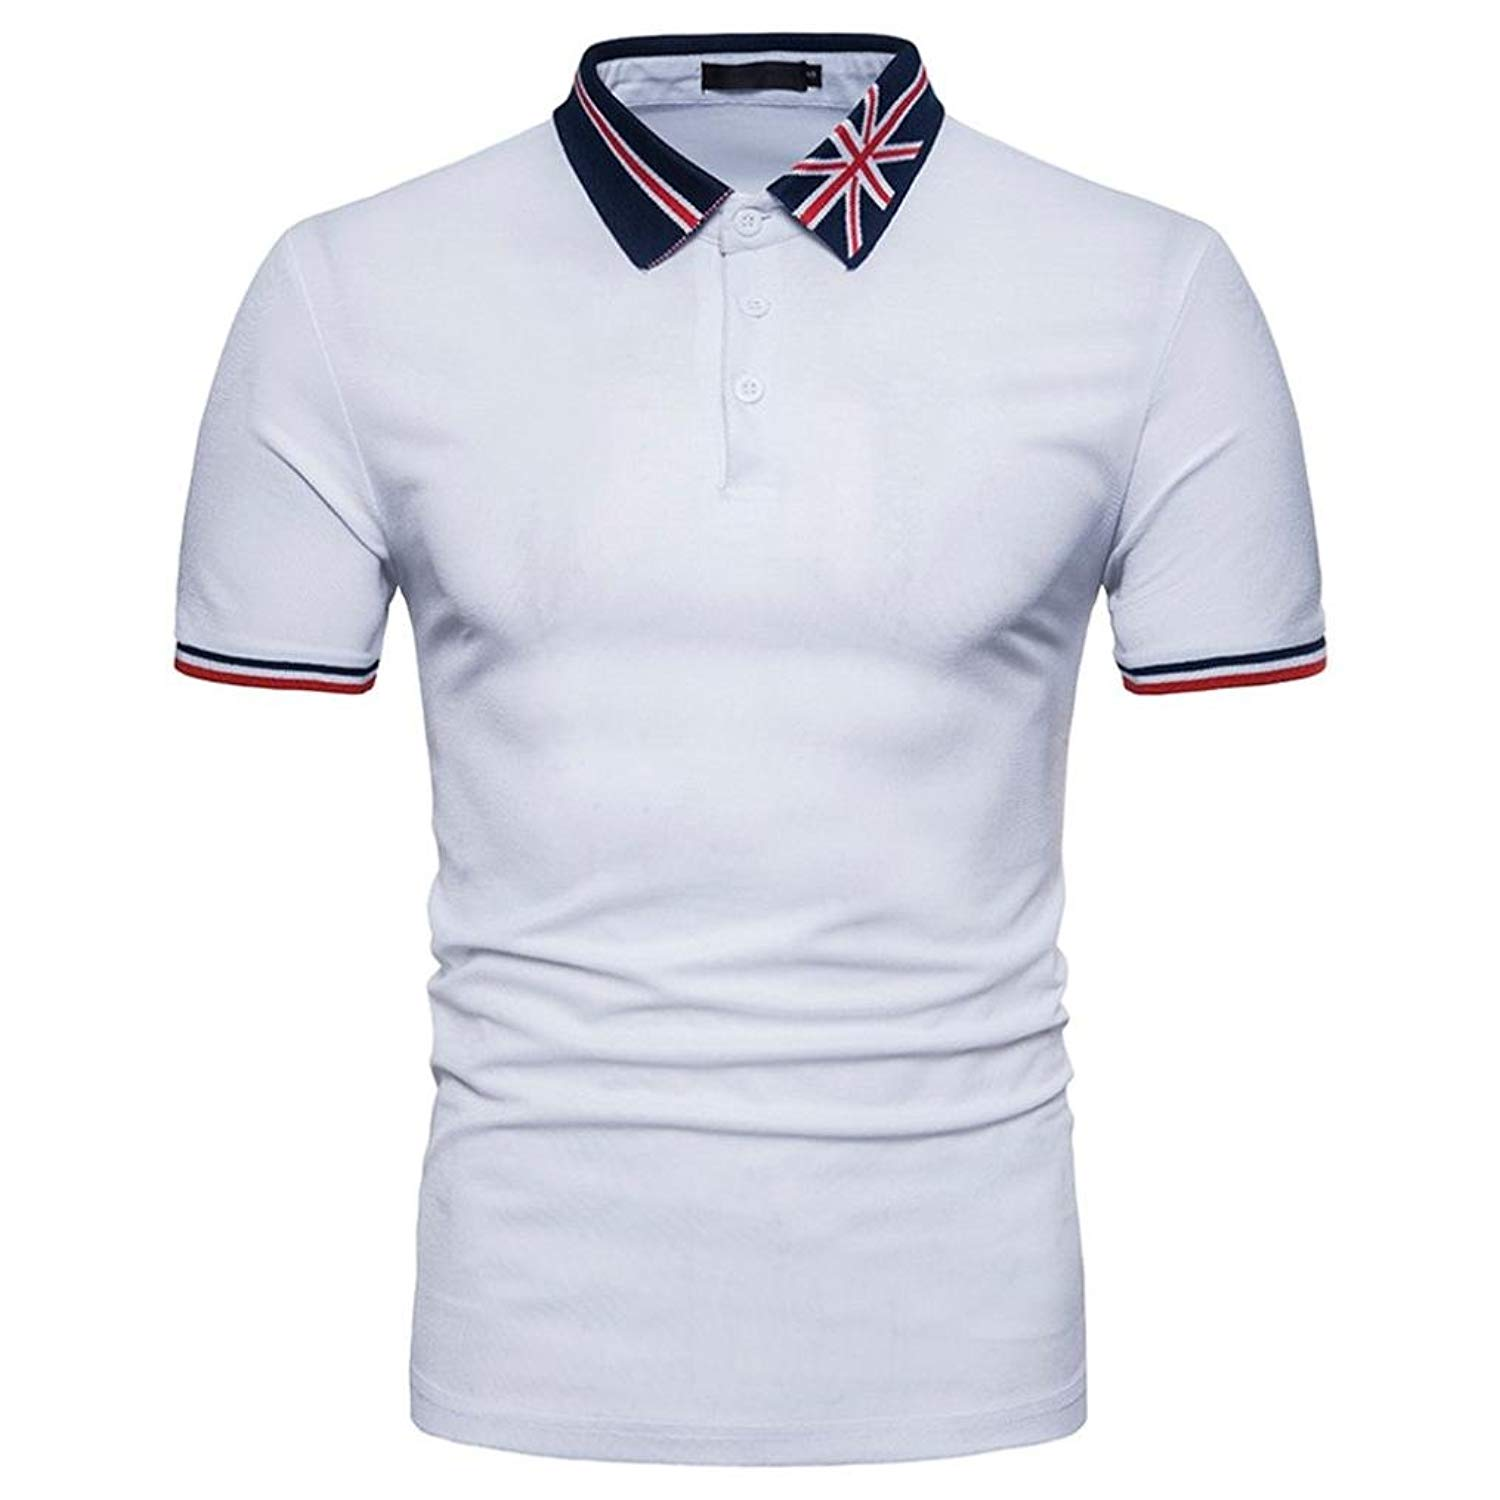 Cheap Polo Shirts Casual Find Polo Shirts Casual Deals On Line At